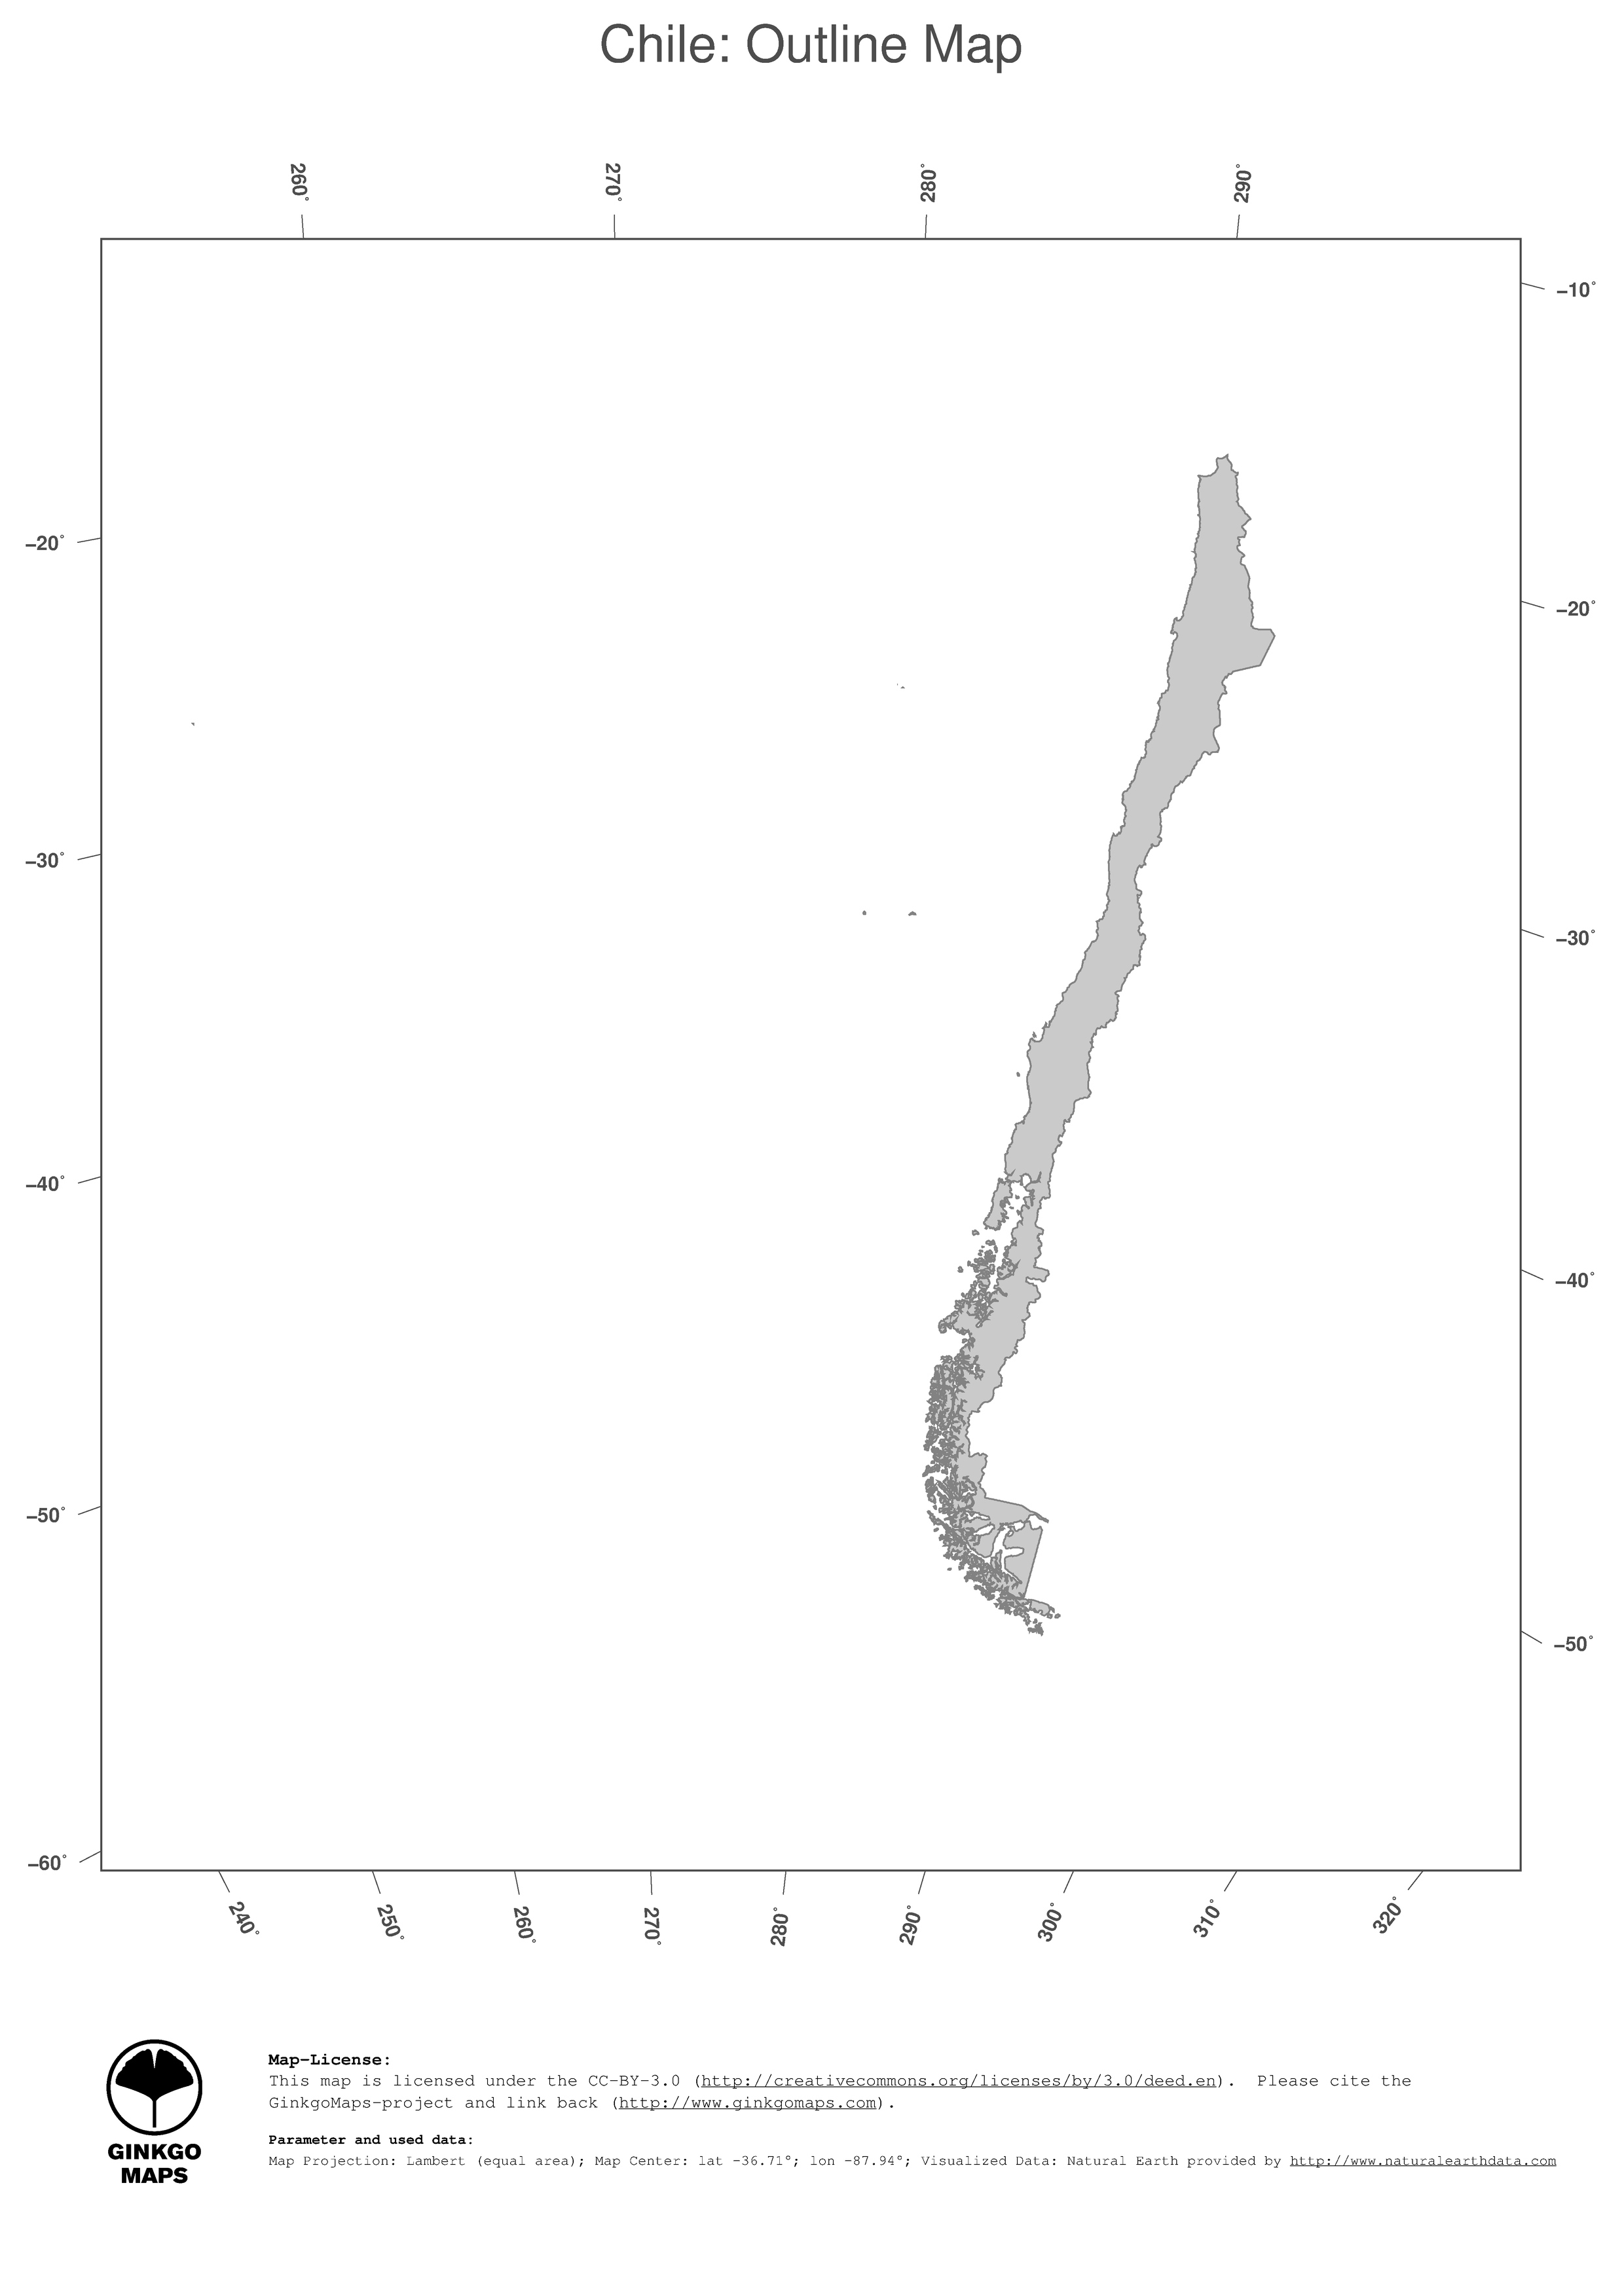 Map Chile GinkgoMaps Continent South America Region Chile - South america map outline